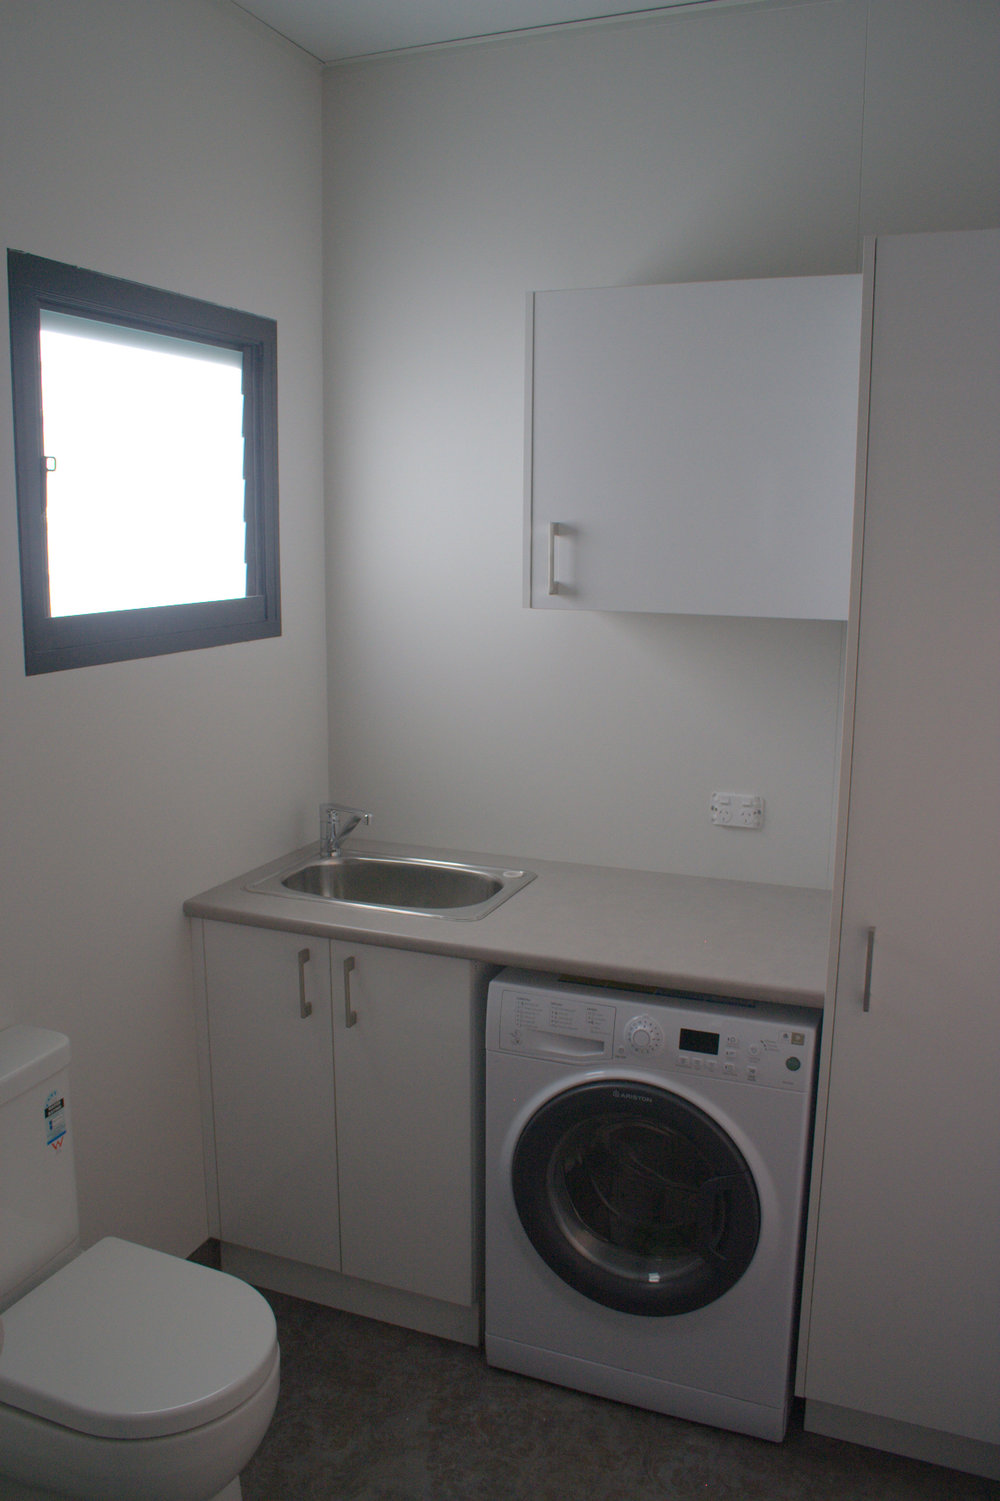 Kitchen, bathroom and laundry modules come with finished surfaces and fitted appliances.